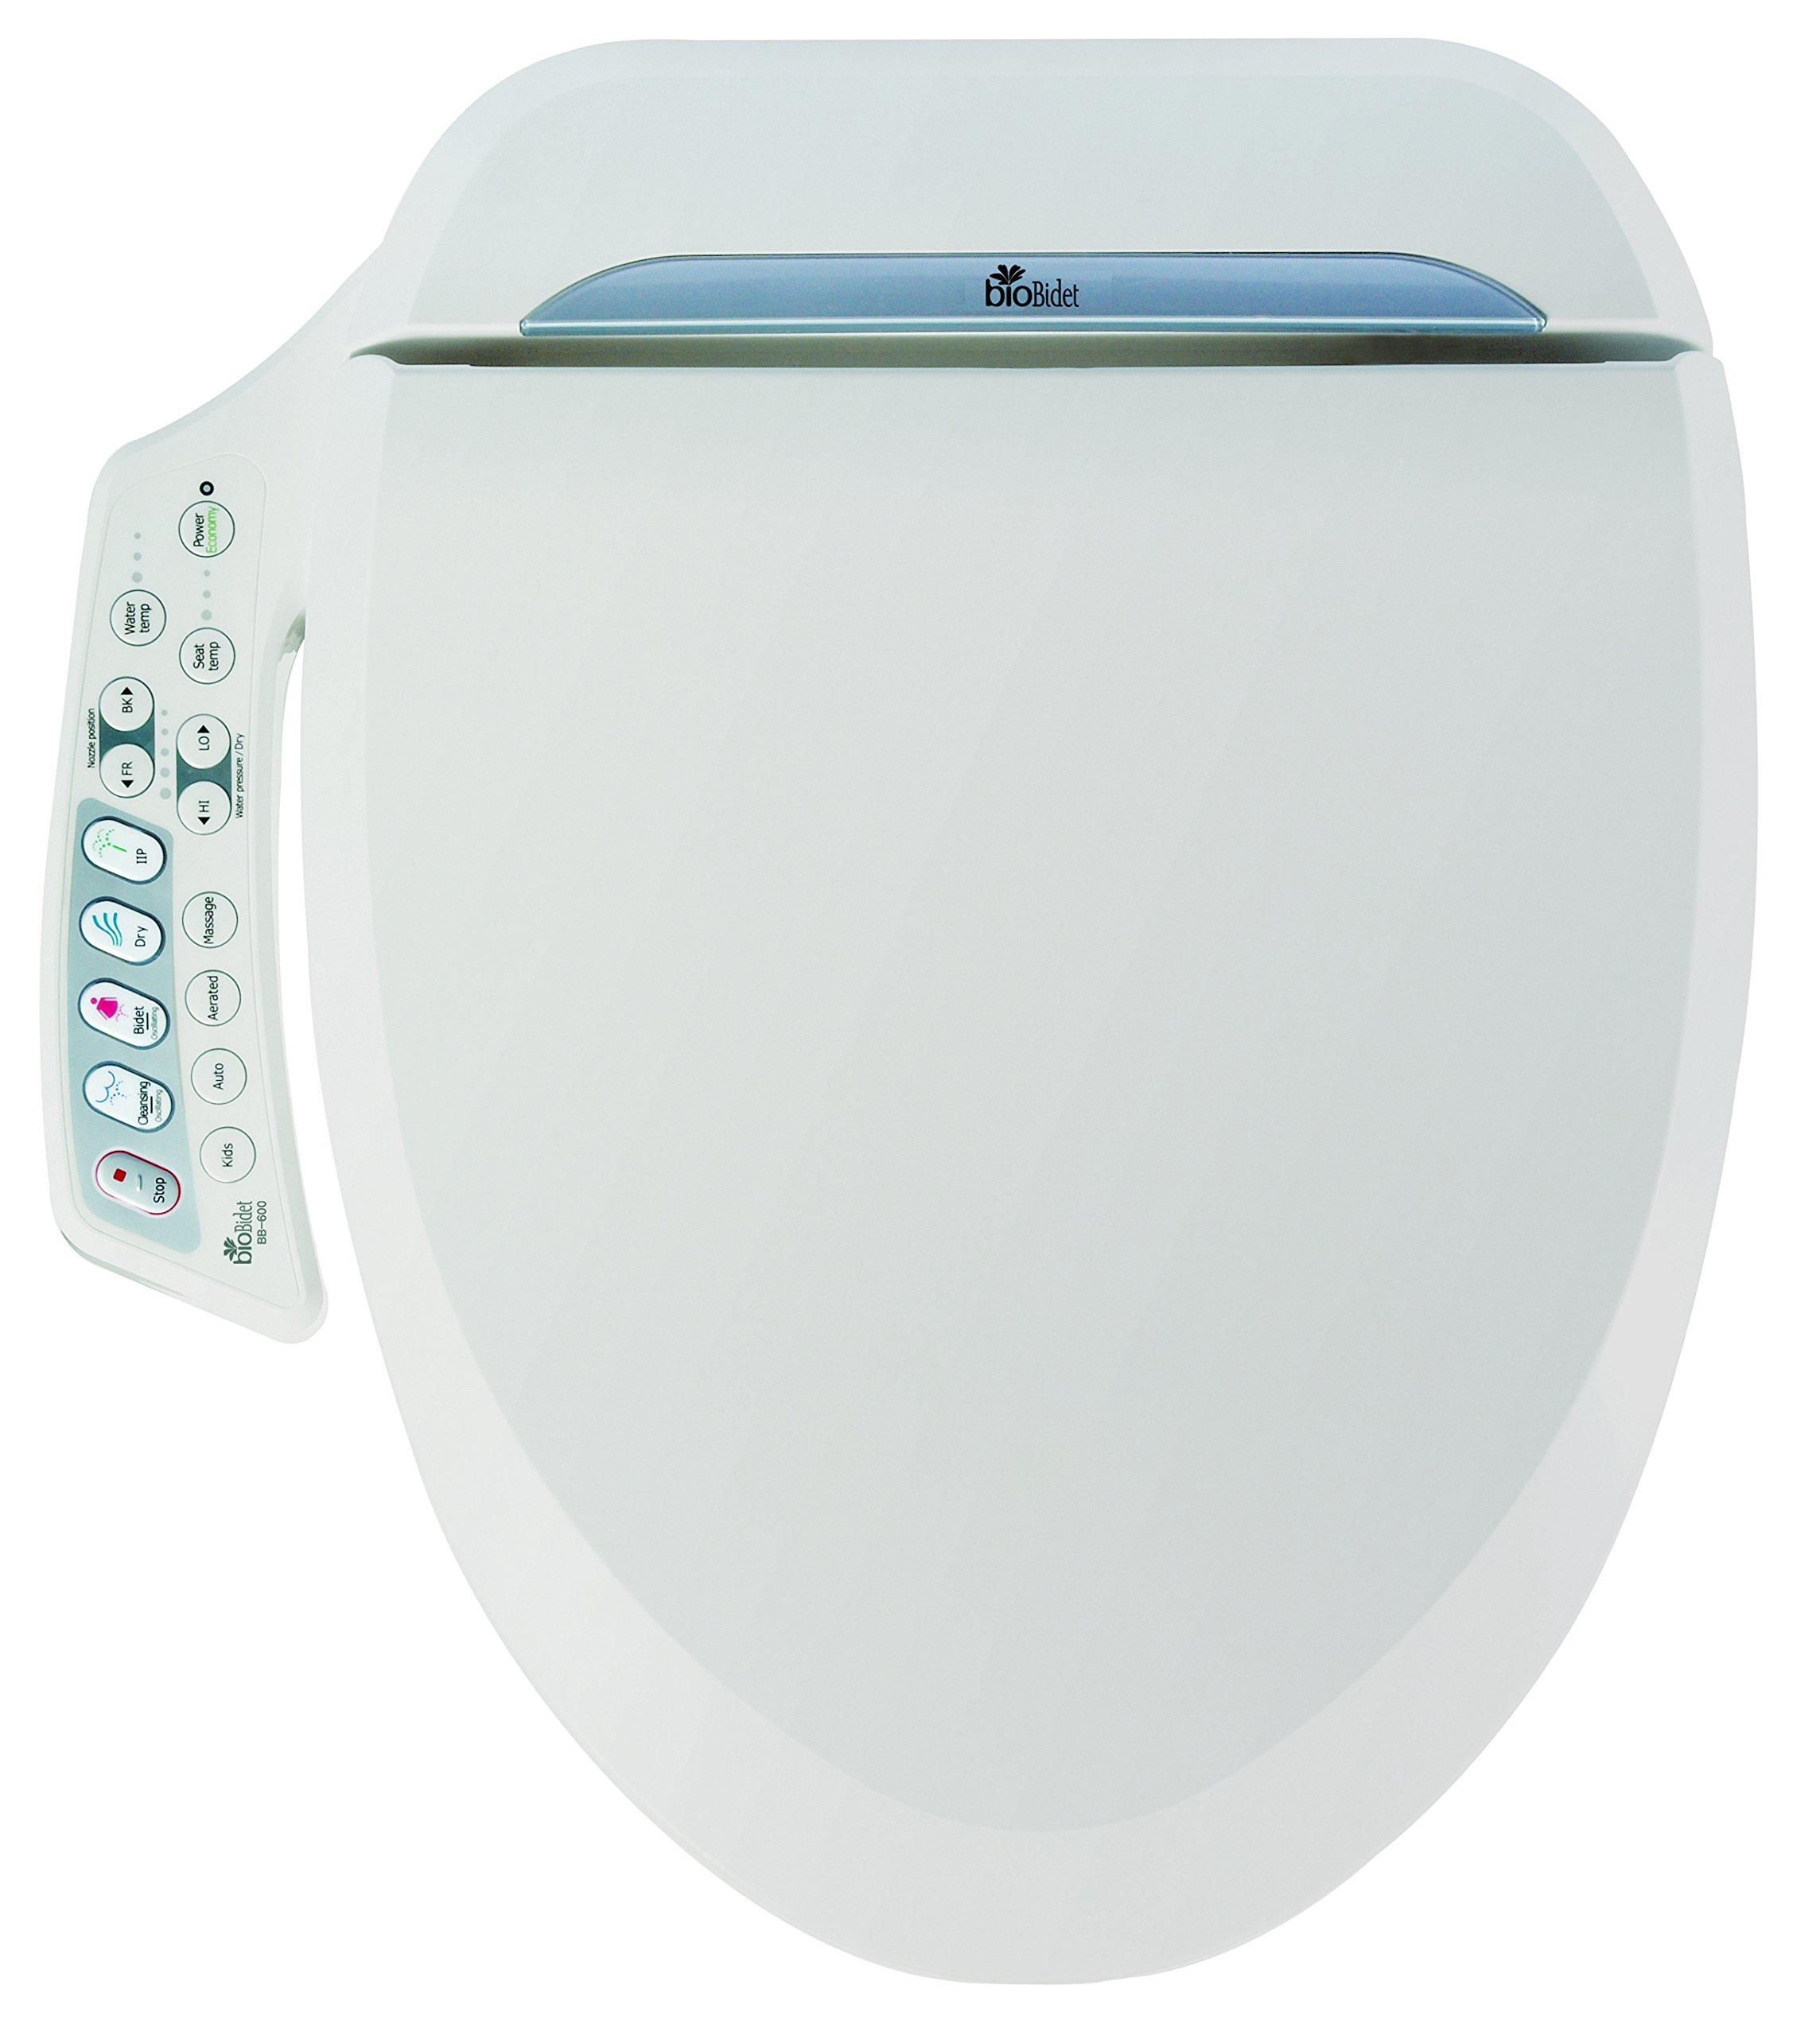 Bio Bidet Ultimate BB-600 Advanced Bidet Toilet Seat, Elongated White. Easy DIY Installation, Luxury Features From Side Panel, Adjustable Heated Seat and Water. Dual Nozzle Has Posterior and Feminine Wash by BioBidet (Image #2)